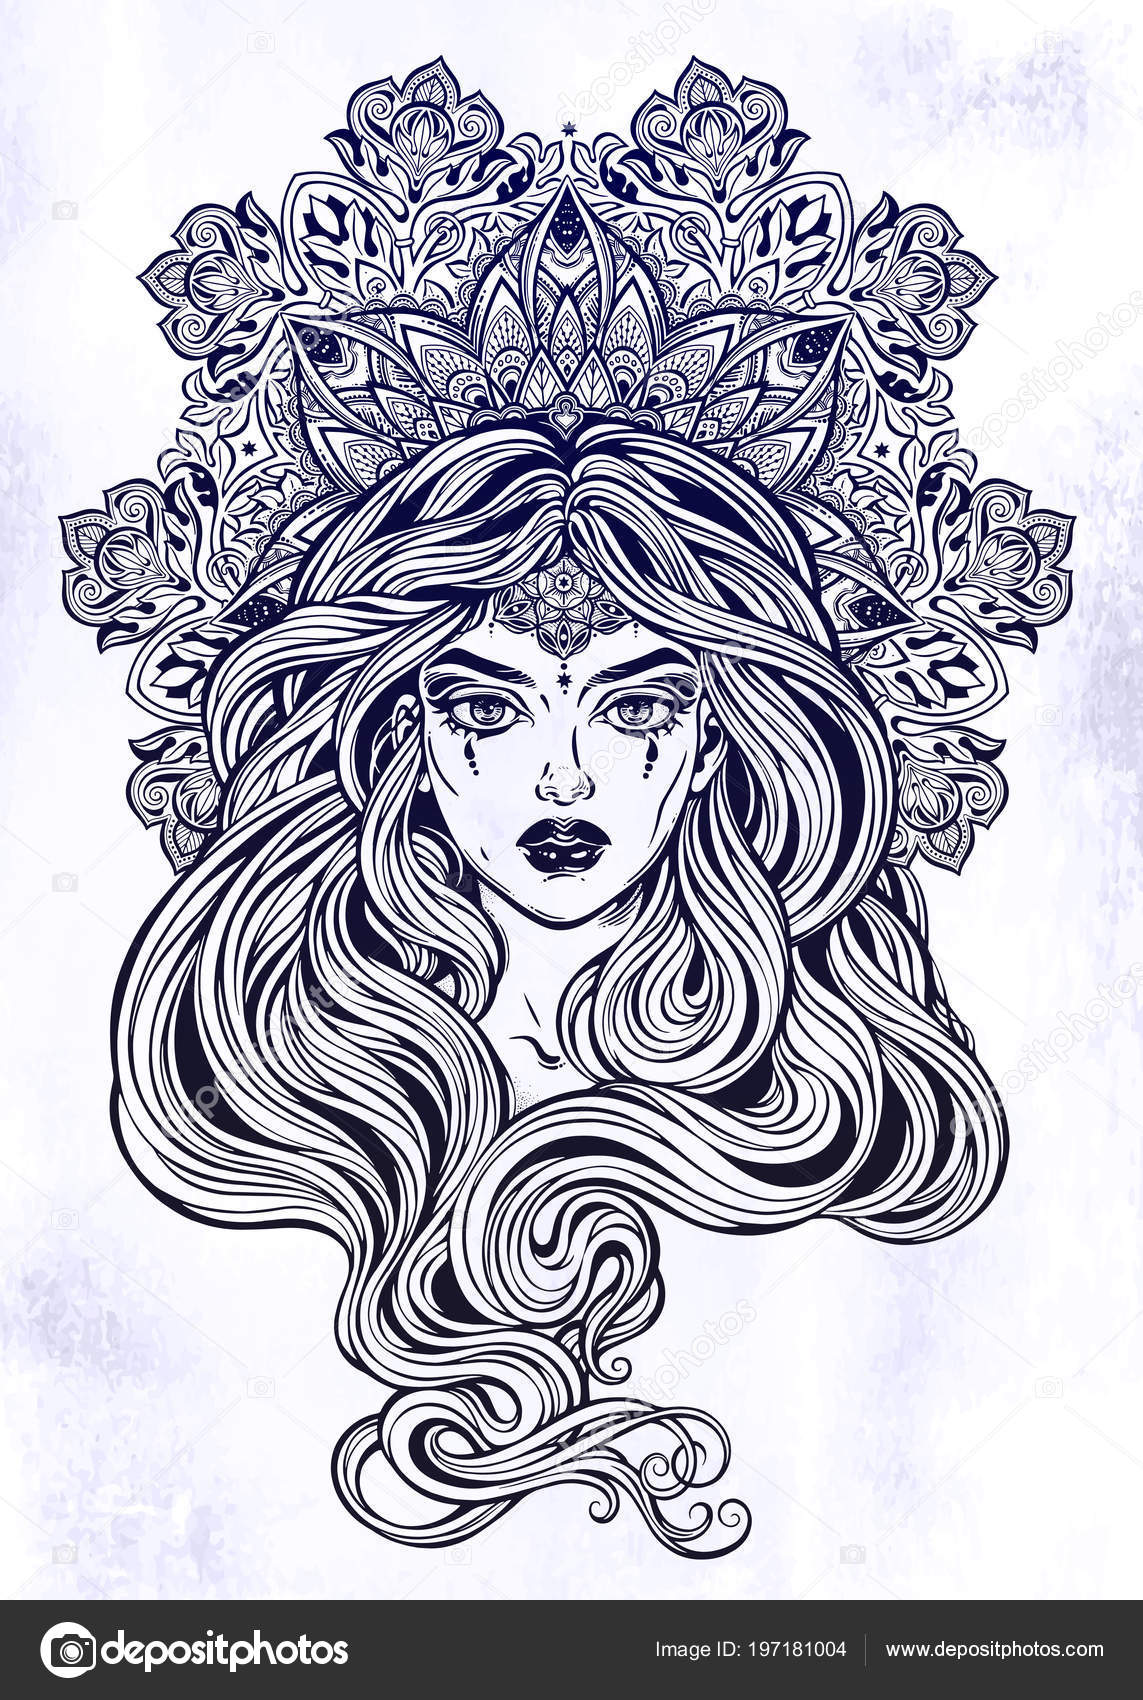 Girl With Beautiful Long Hair In Art Nouveau Style With Ornate